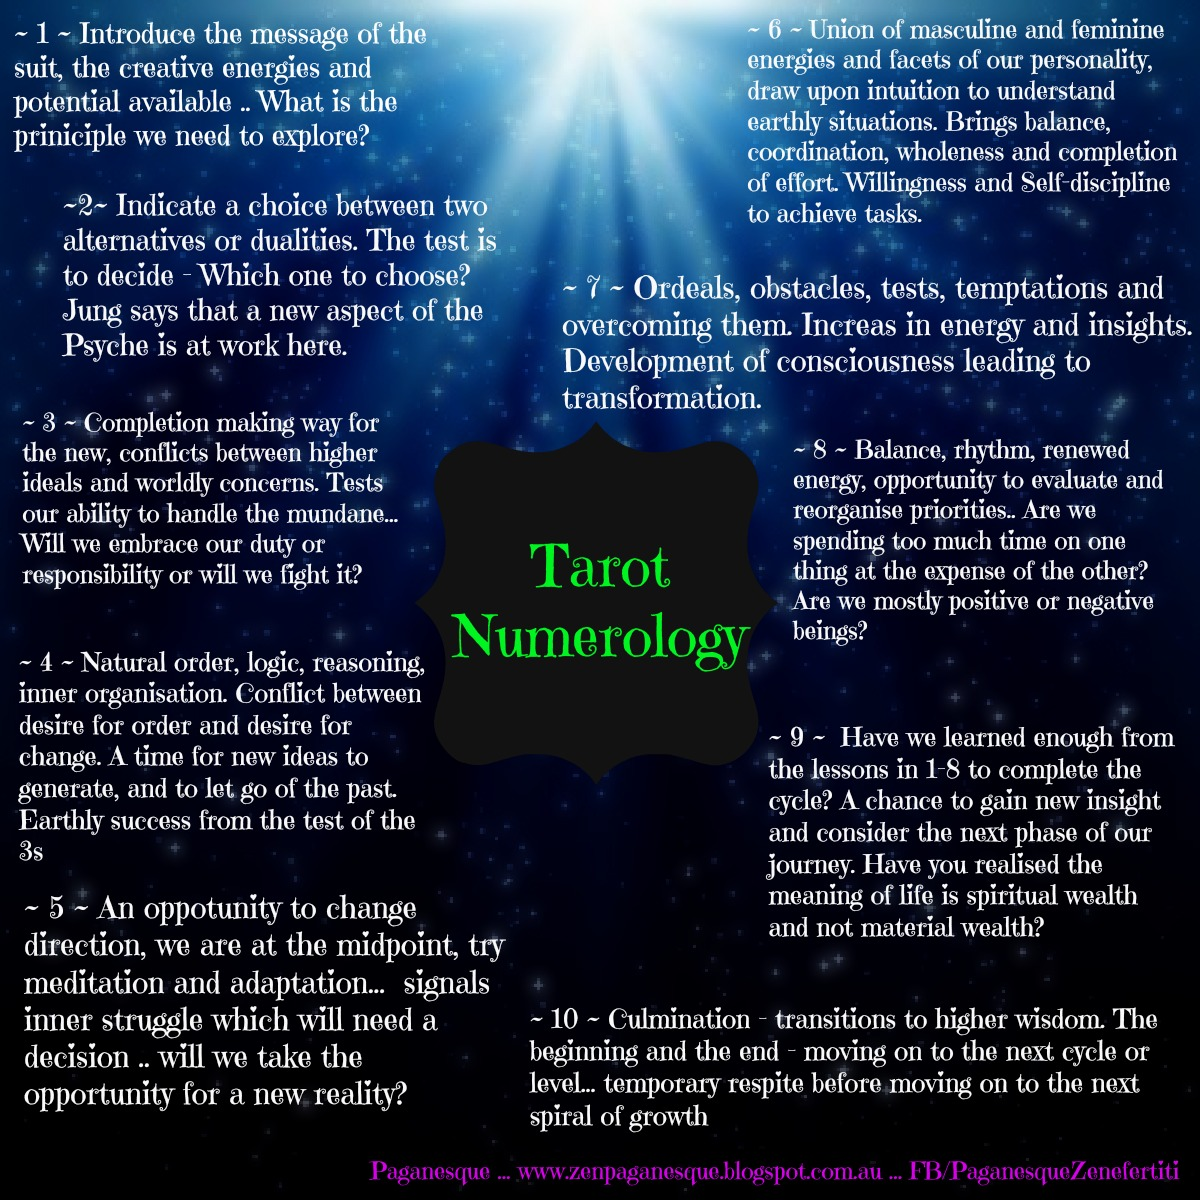 Numerology meaning of 67 image 5